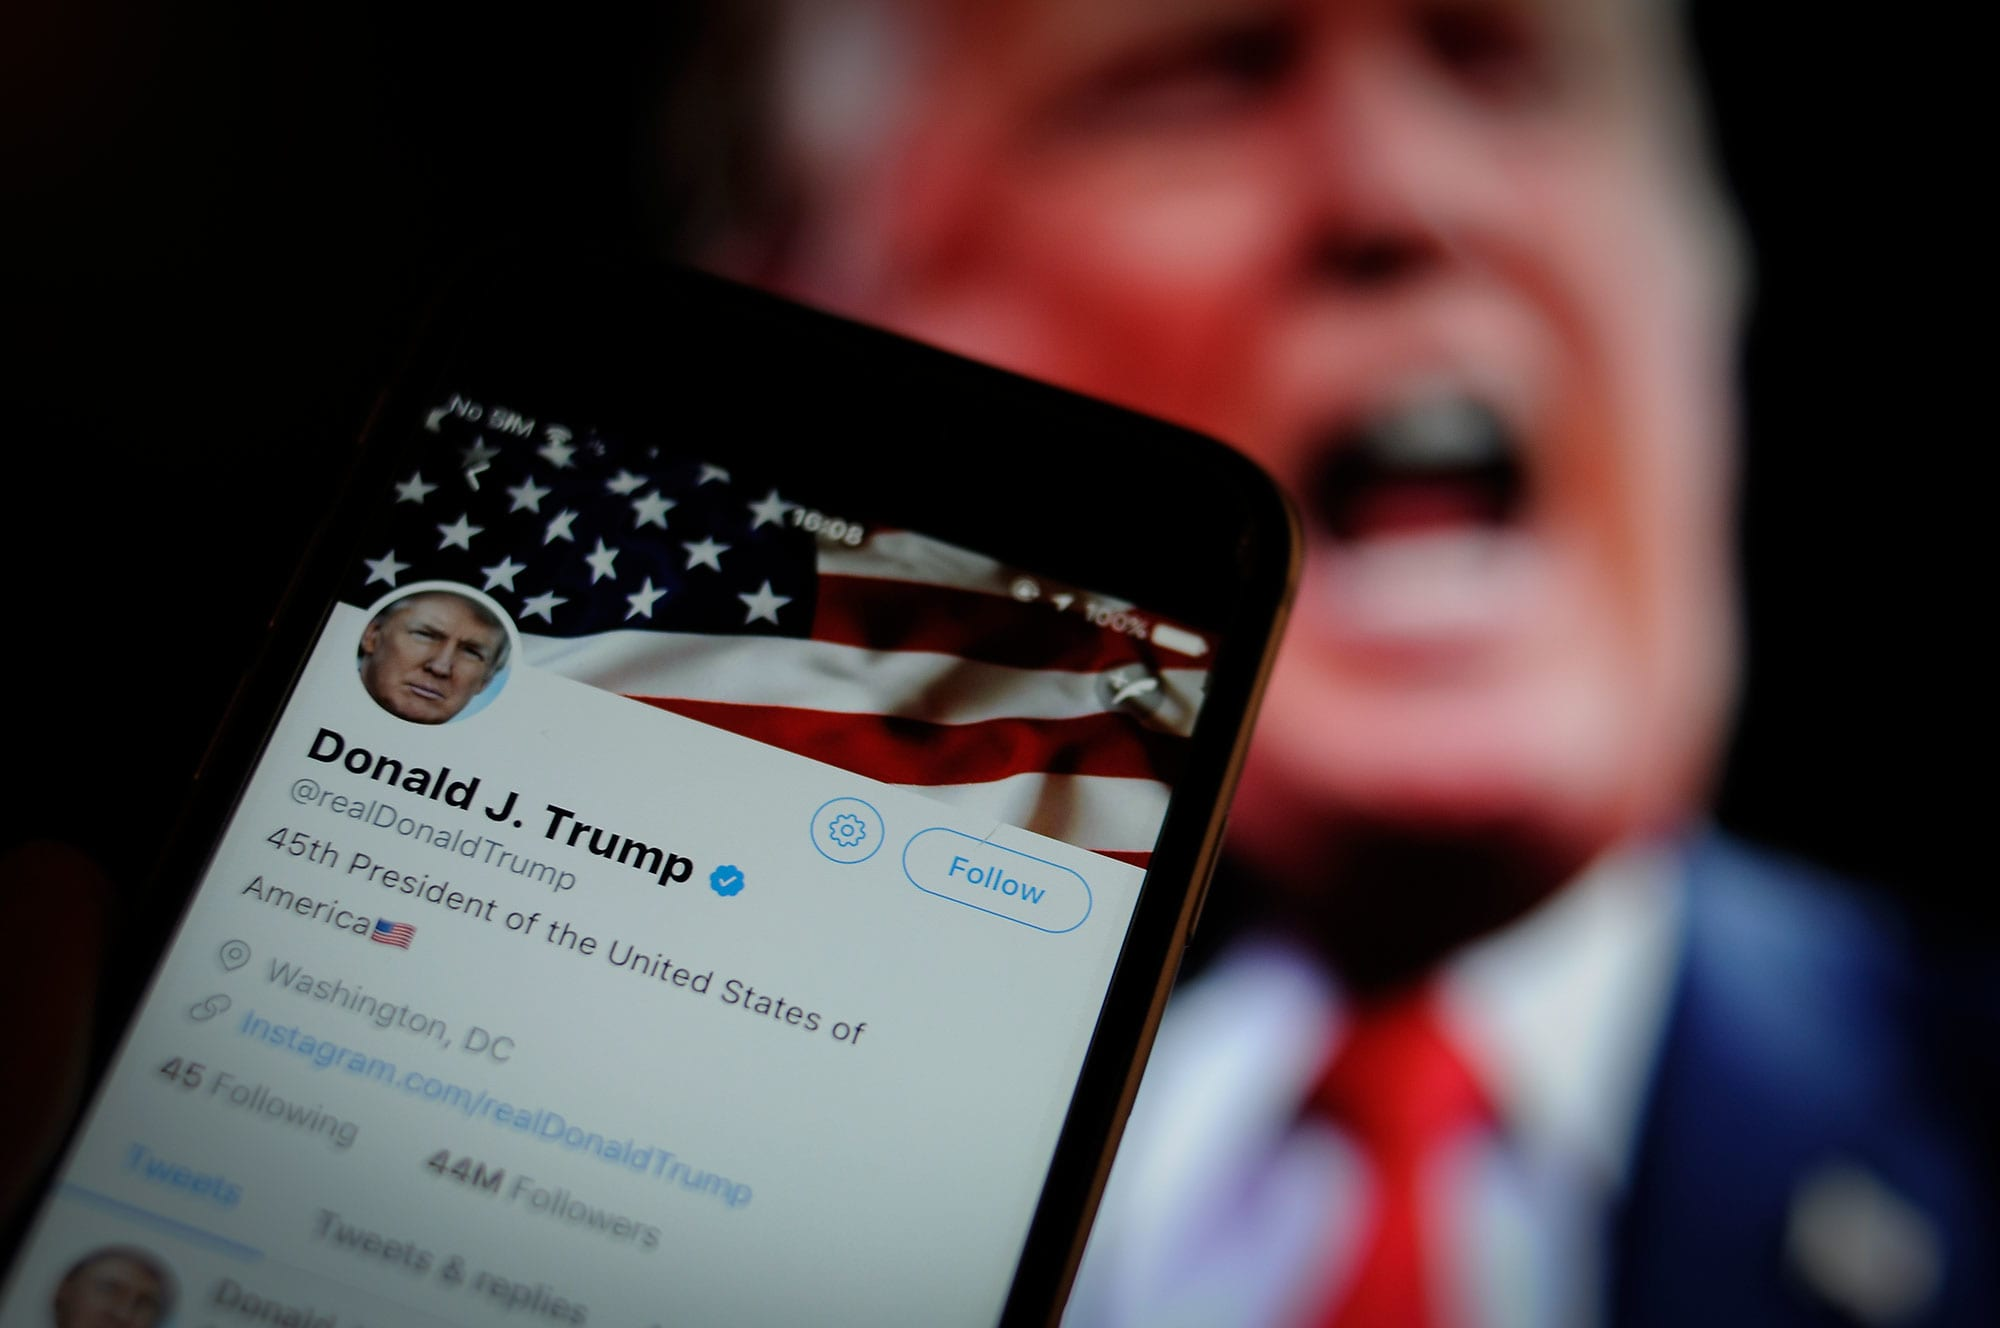 Facebook, Twitter lock Trump's account following video addressing Washington rioters